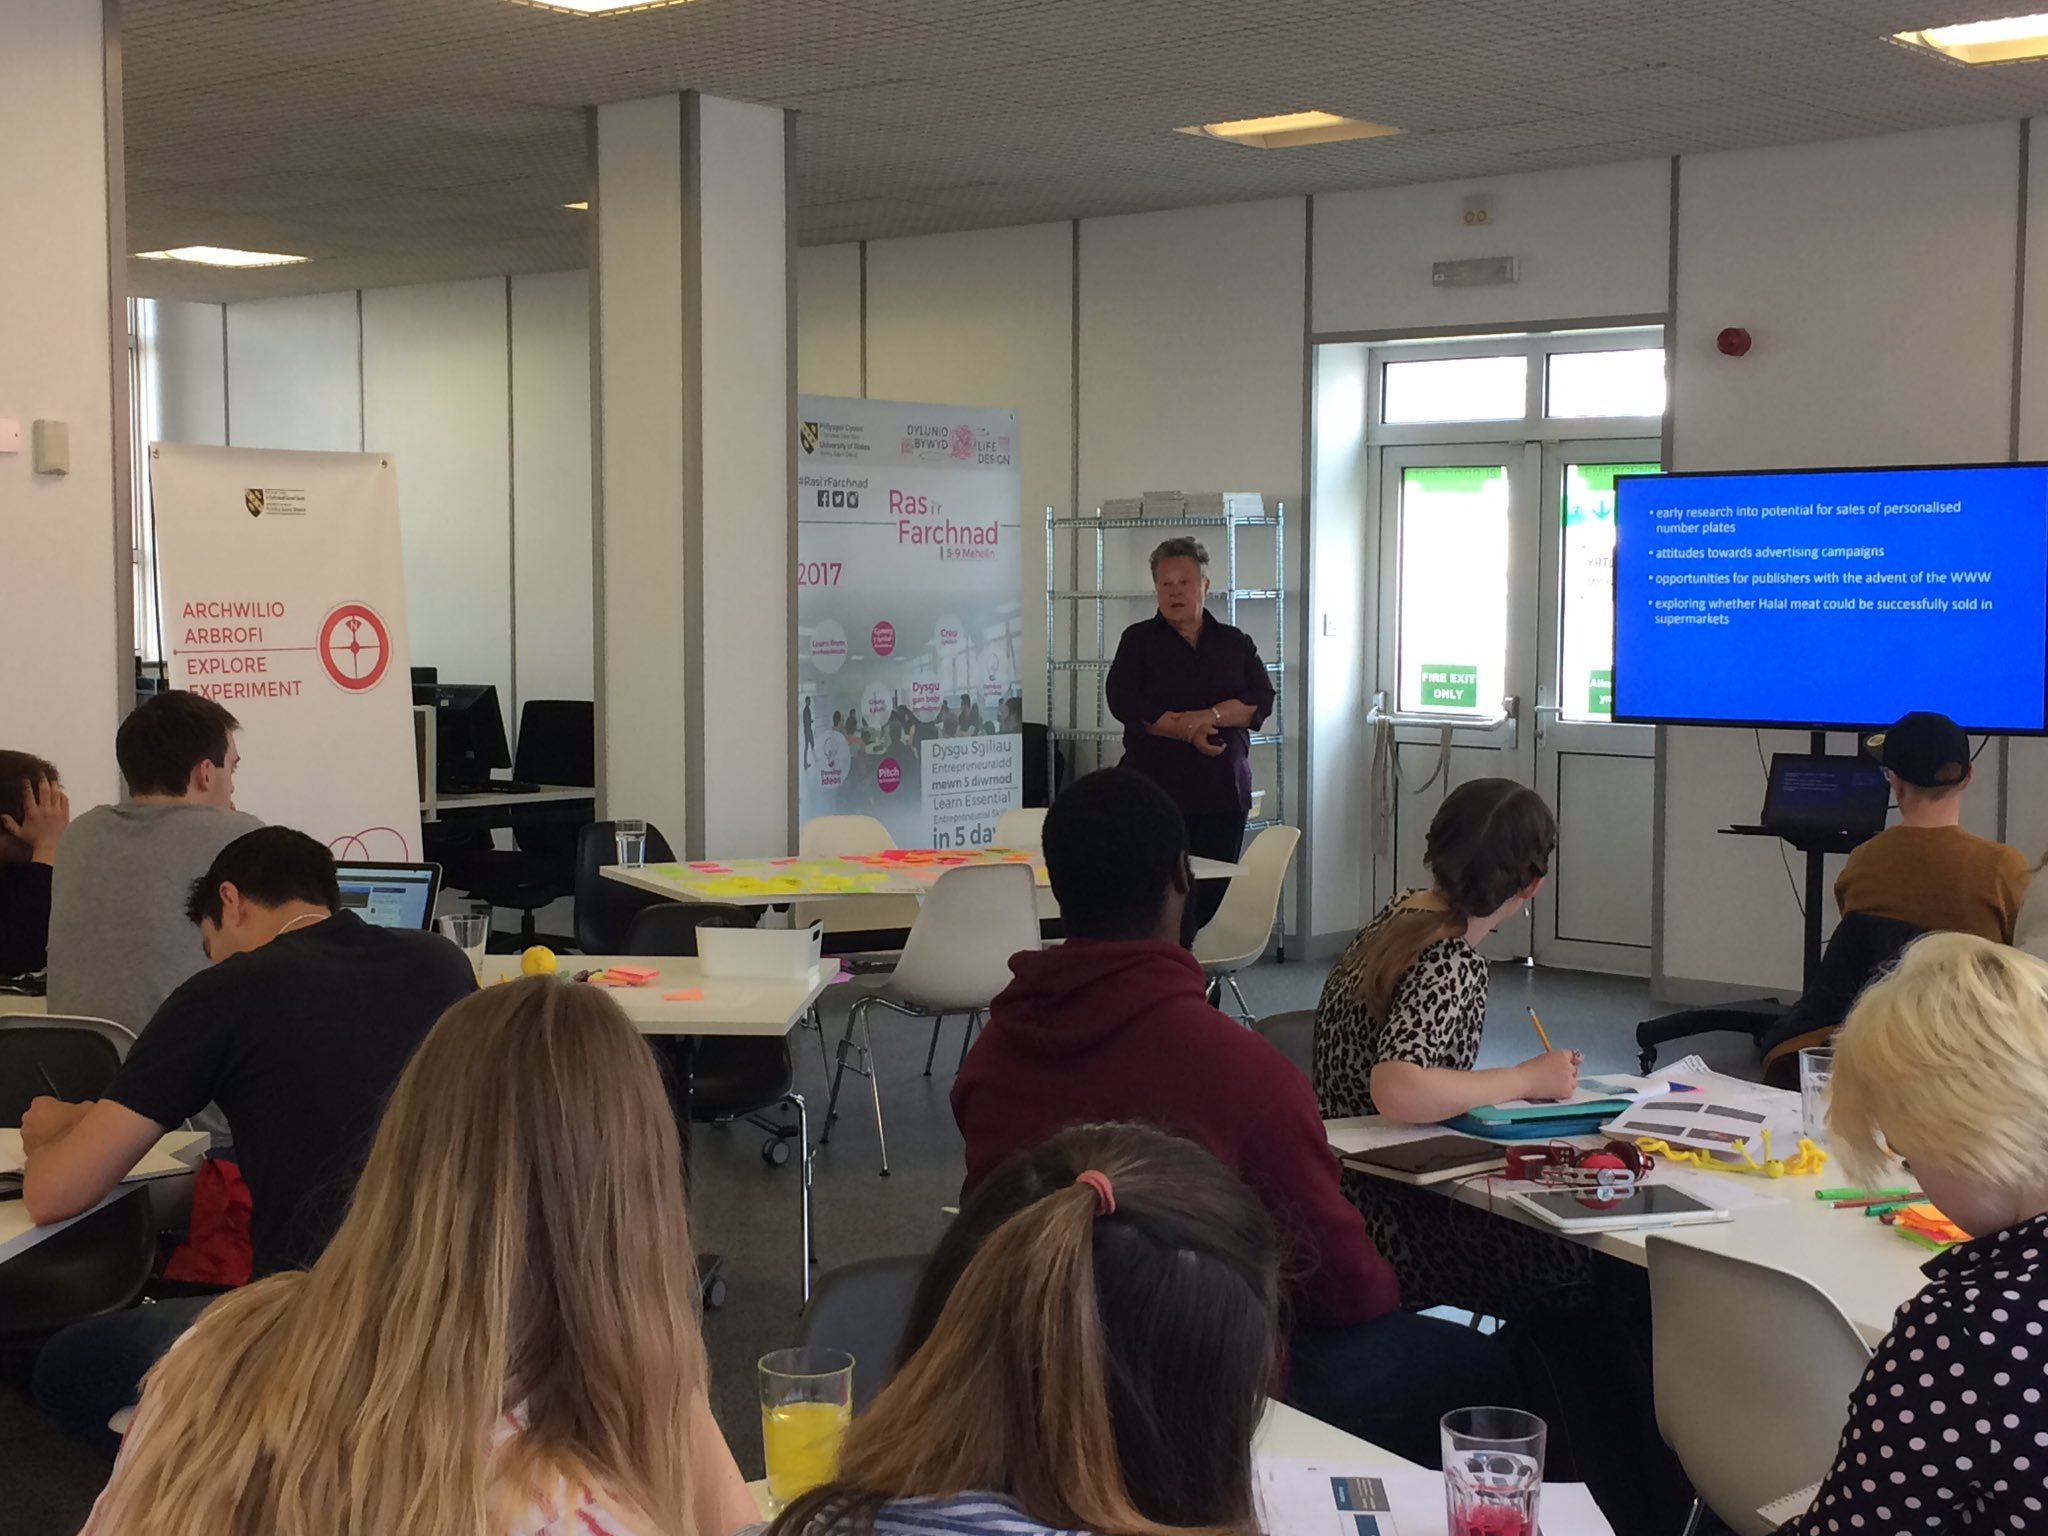 This morning we're pleased to welcome #marketresearch expert Vicky Harvey to give a #masterclass #RacetoMarket @UWTSDStudents https://t.co/oDZIlCQ0Sf